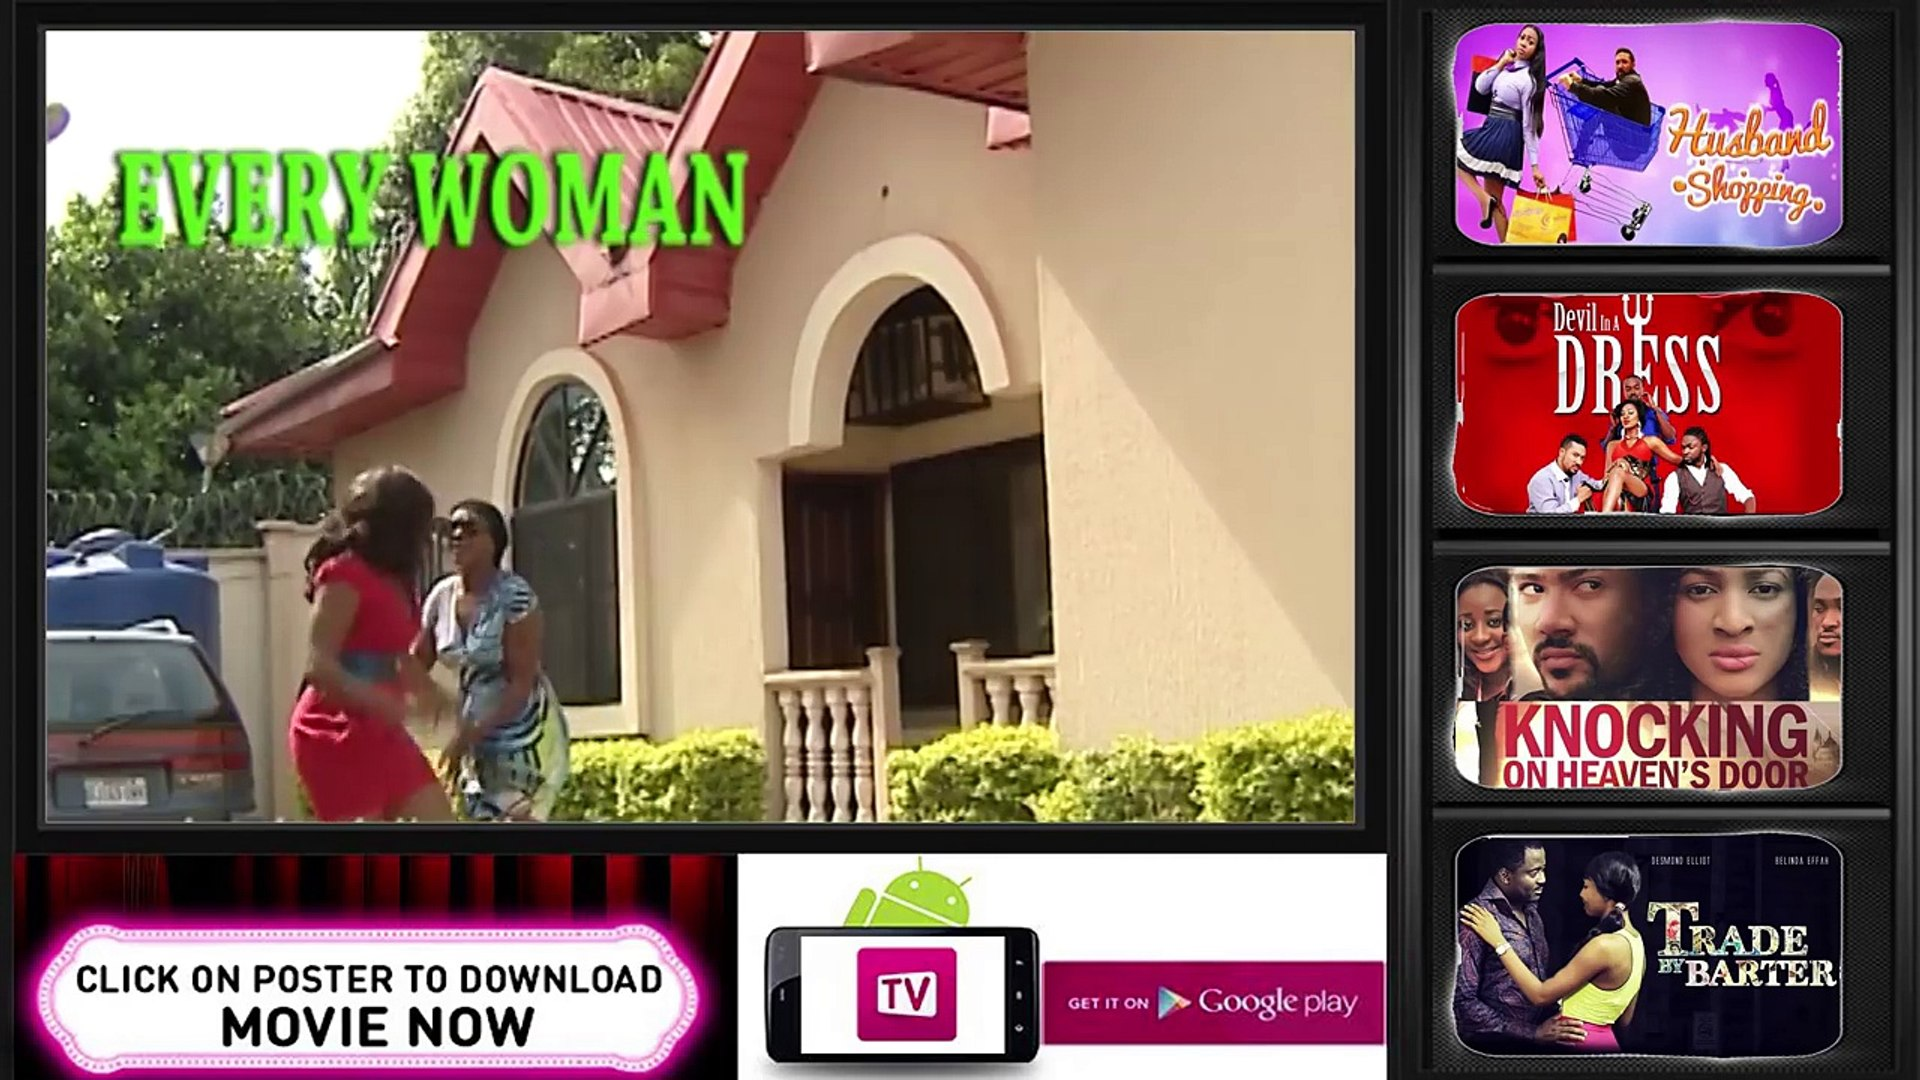 Every Woman [Official Trailer]  Nigerian Nollywood Drama Movie